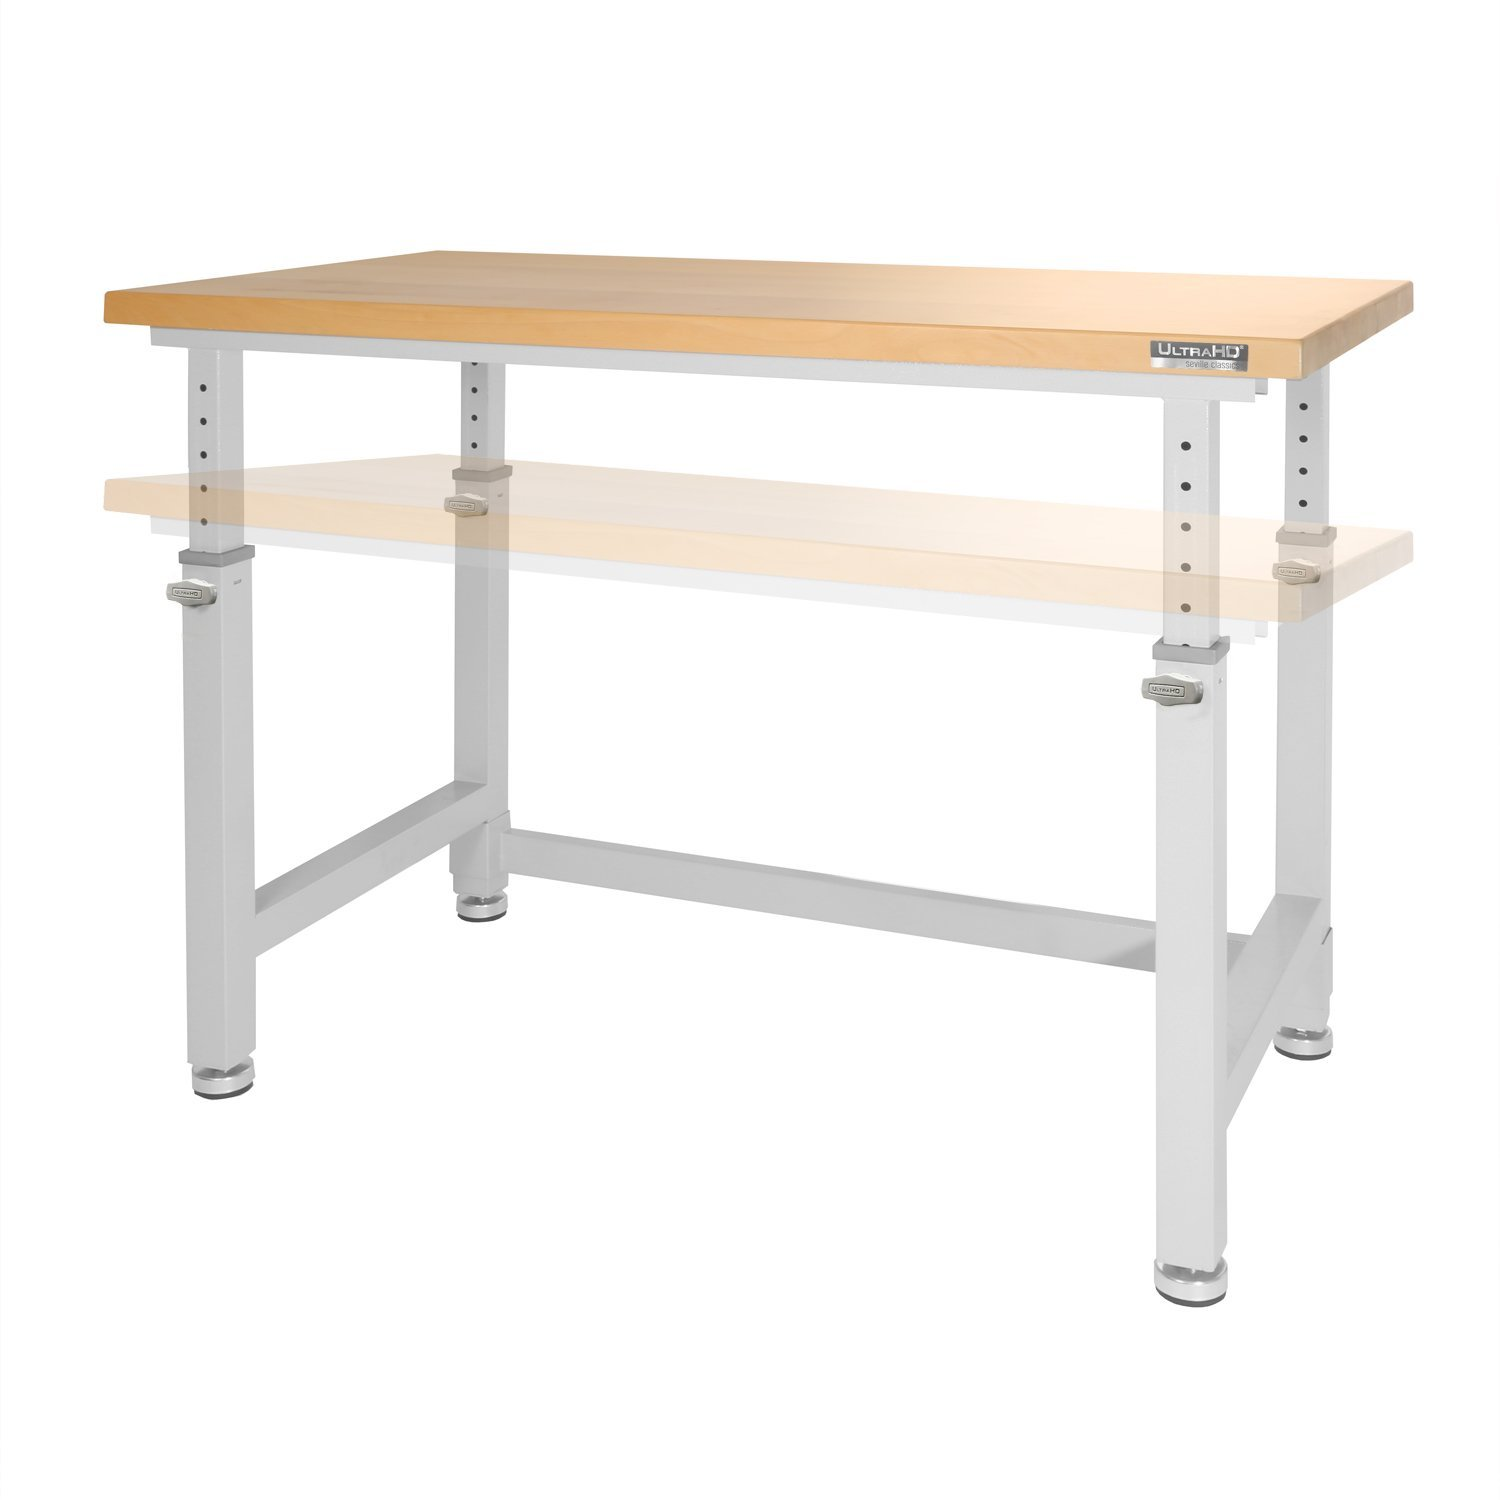 Ultra Machine Knitting Table by Amazon